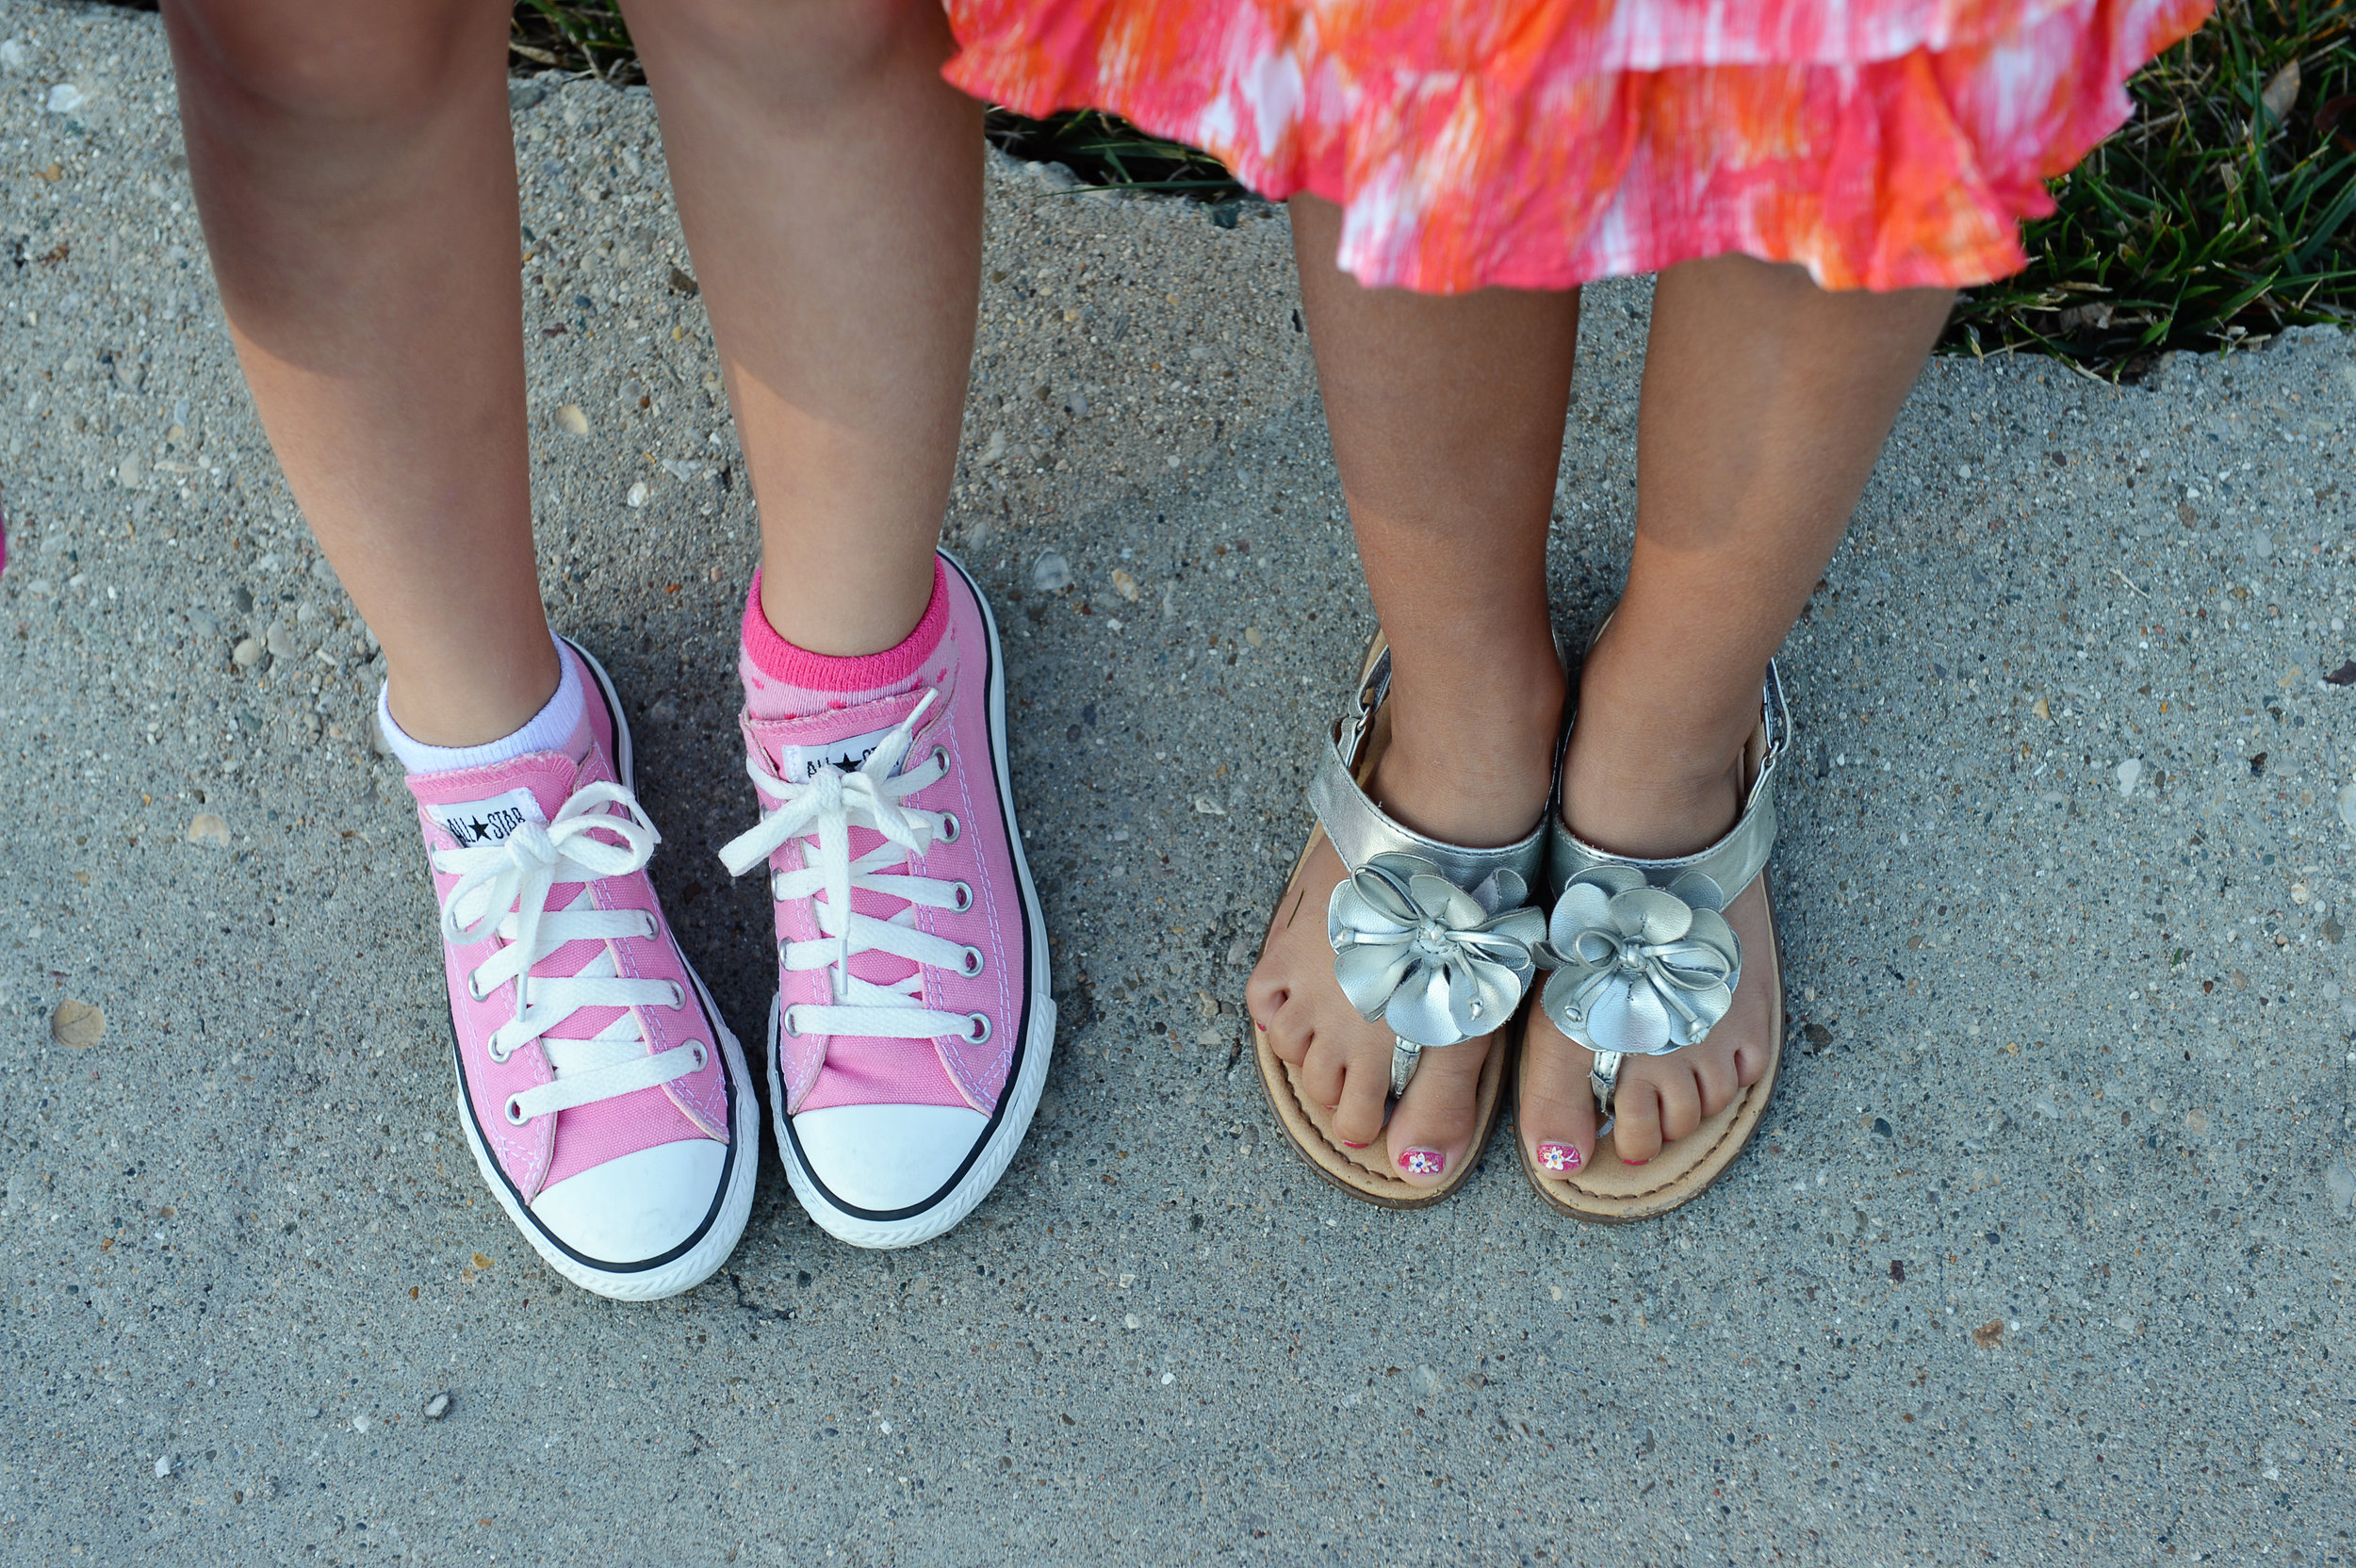 first day of school august 2012 021 peds.jpg